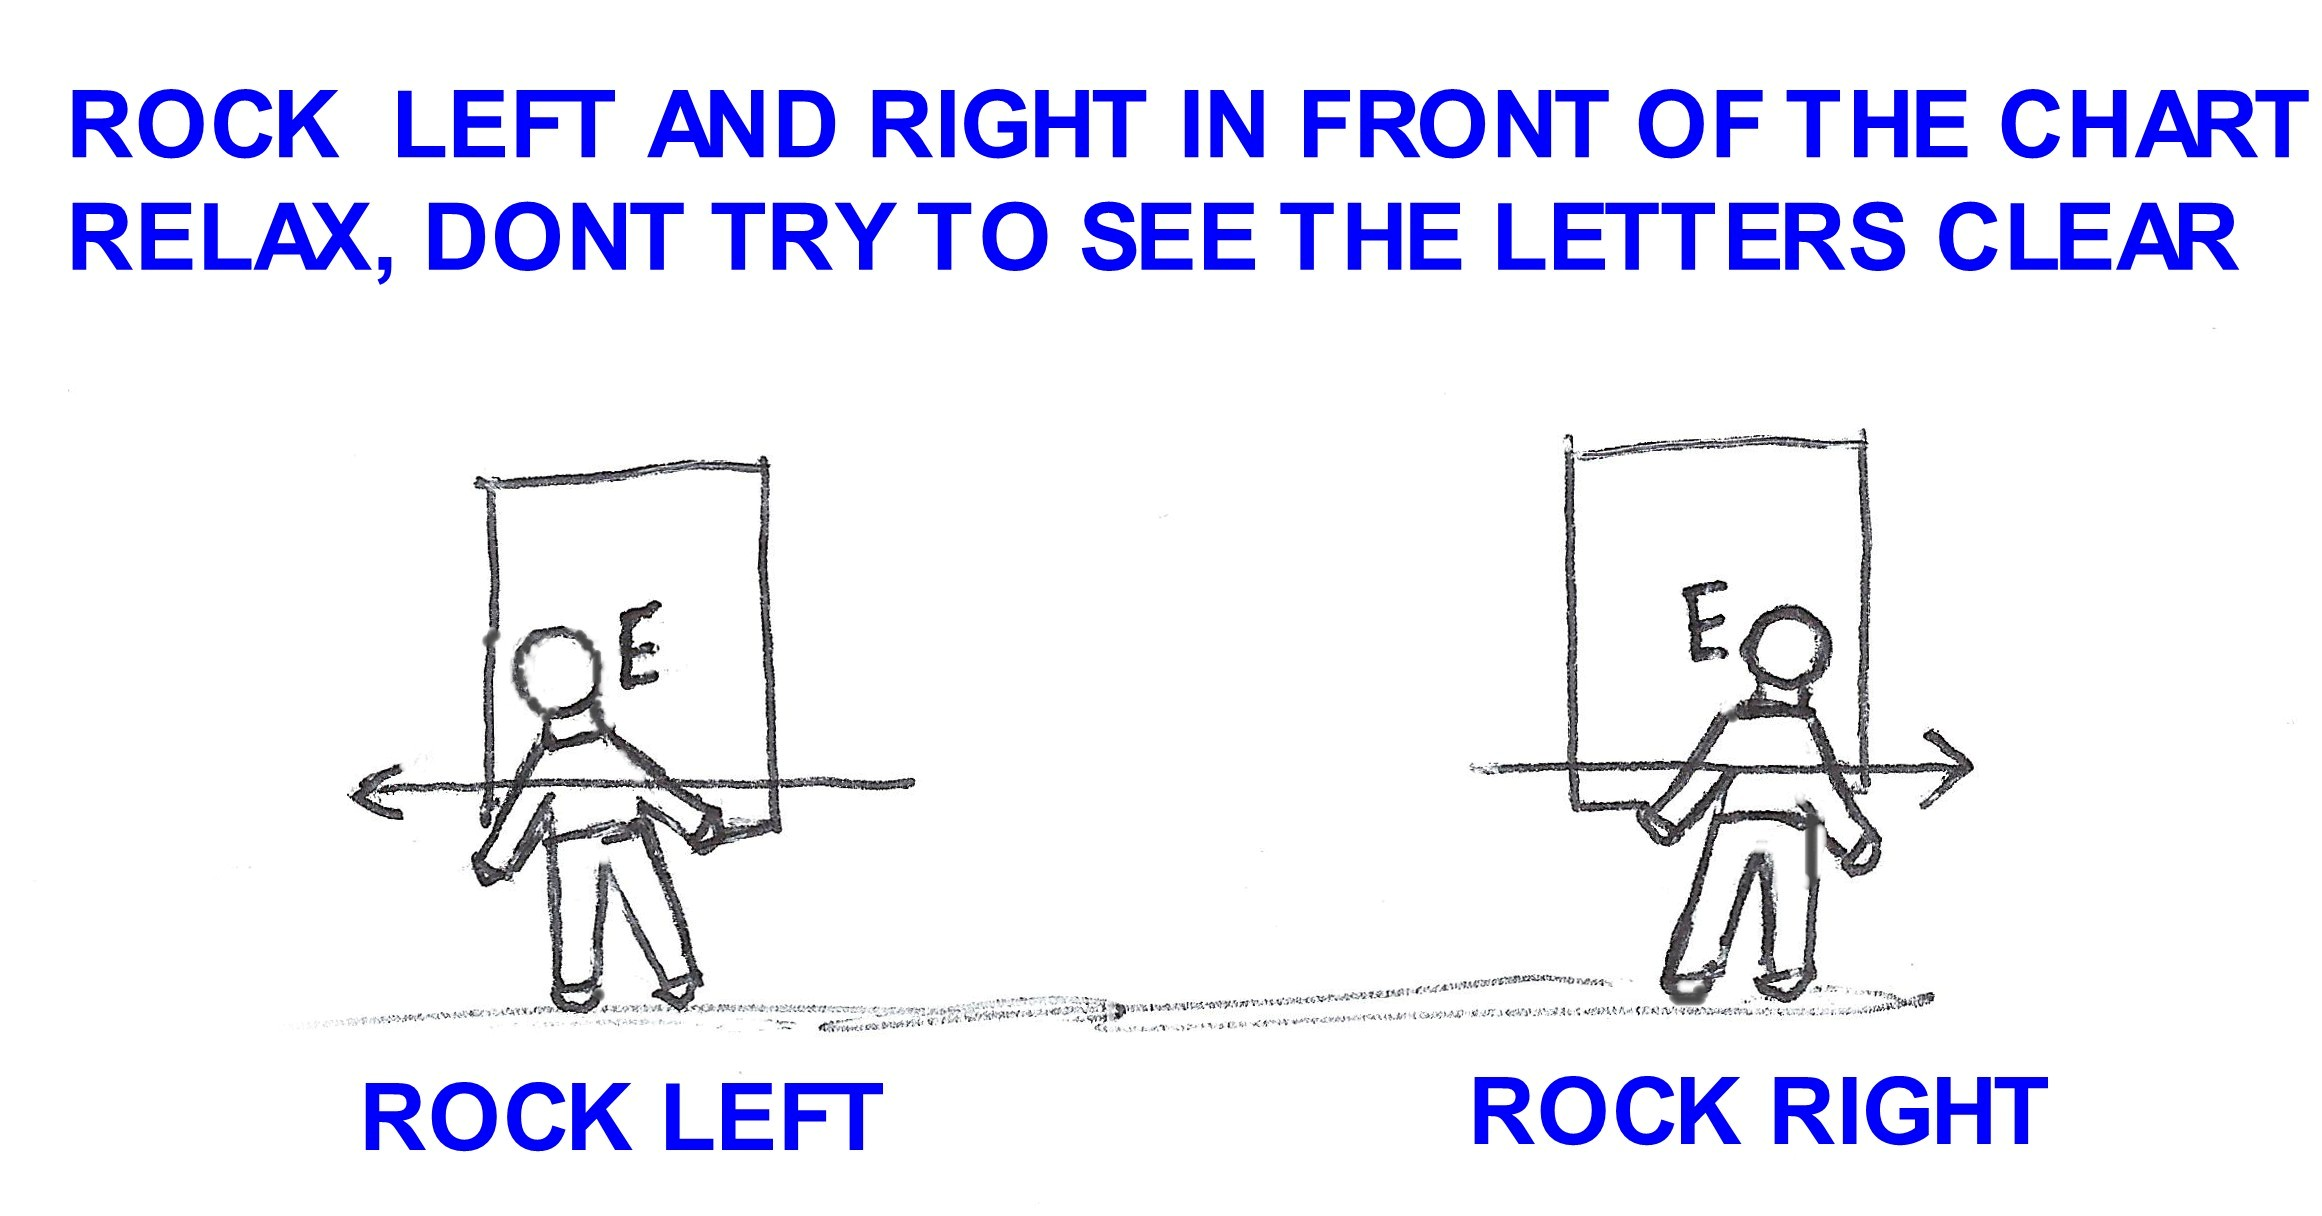 ROCK_LEFT_AND_RIGHT_IN_FRONT_OF_THE_CHART_002.jpg